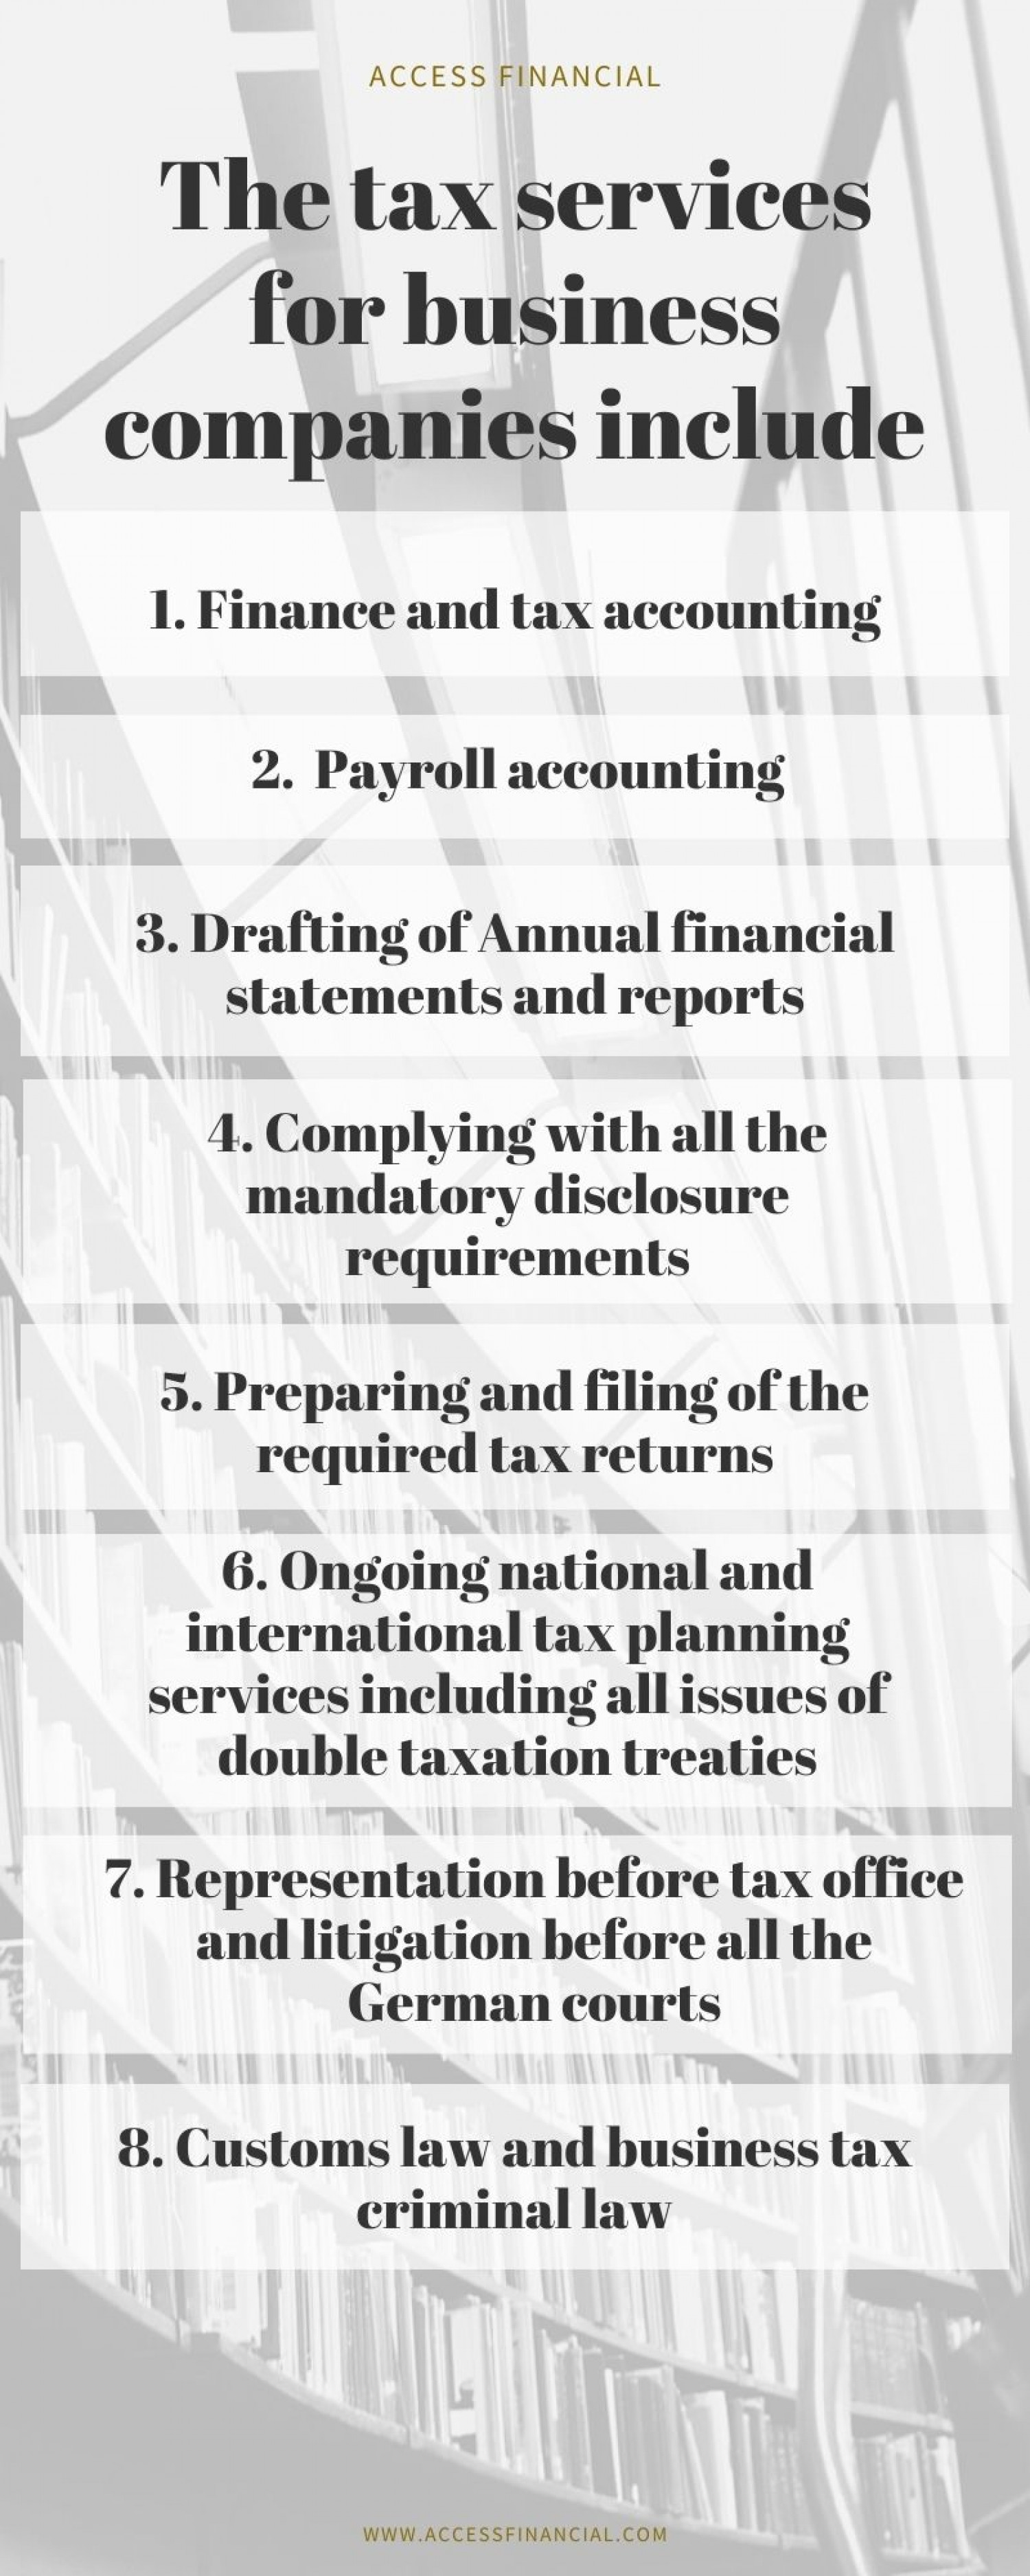 The tax services for business companies include Infographic